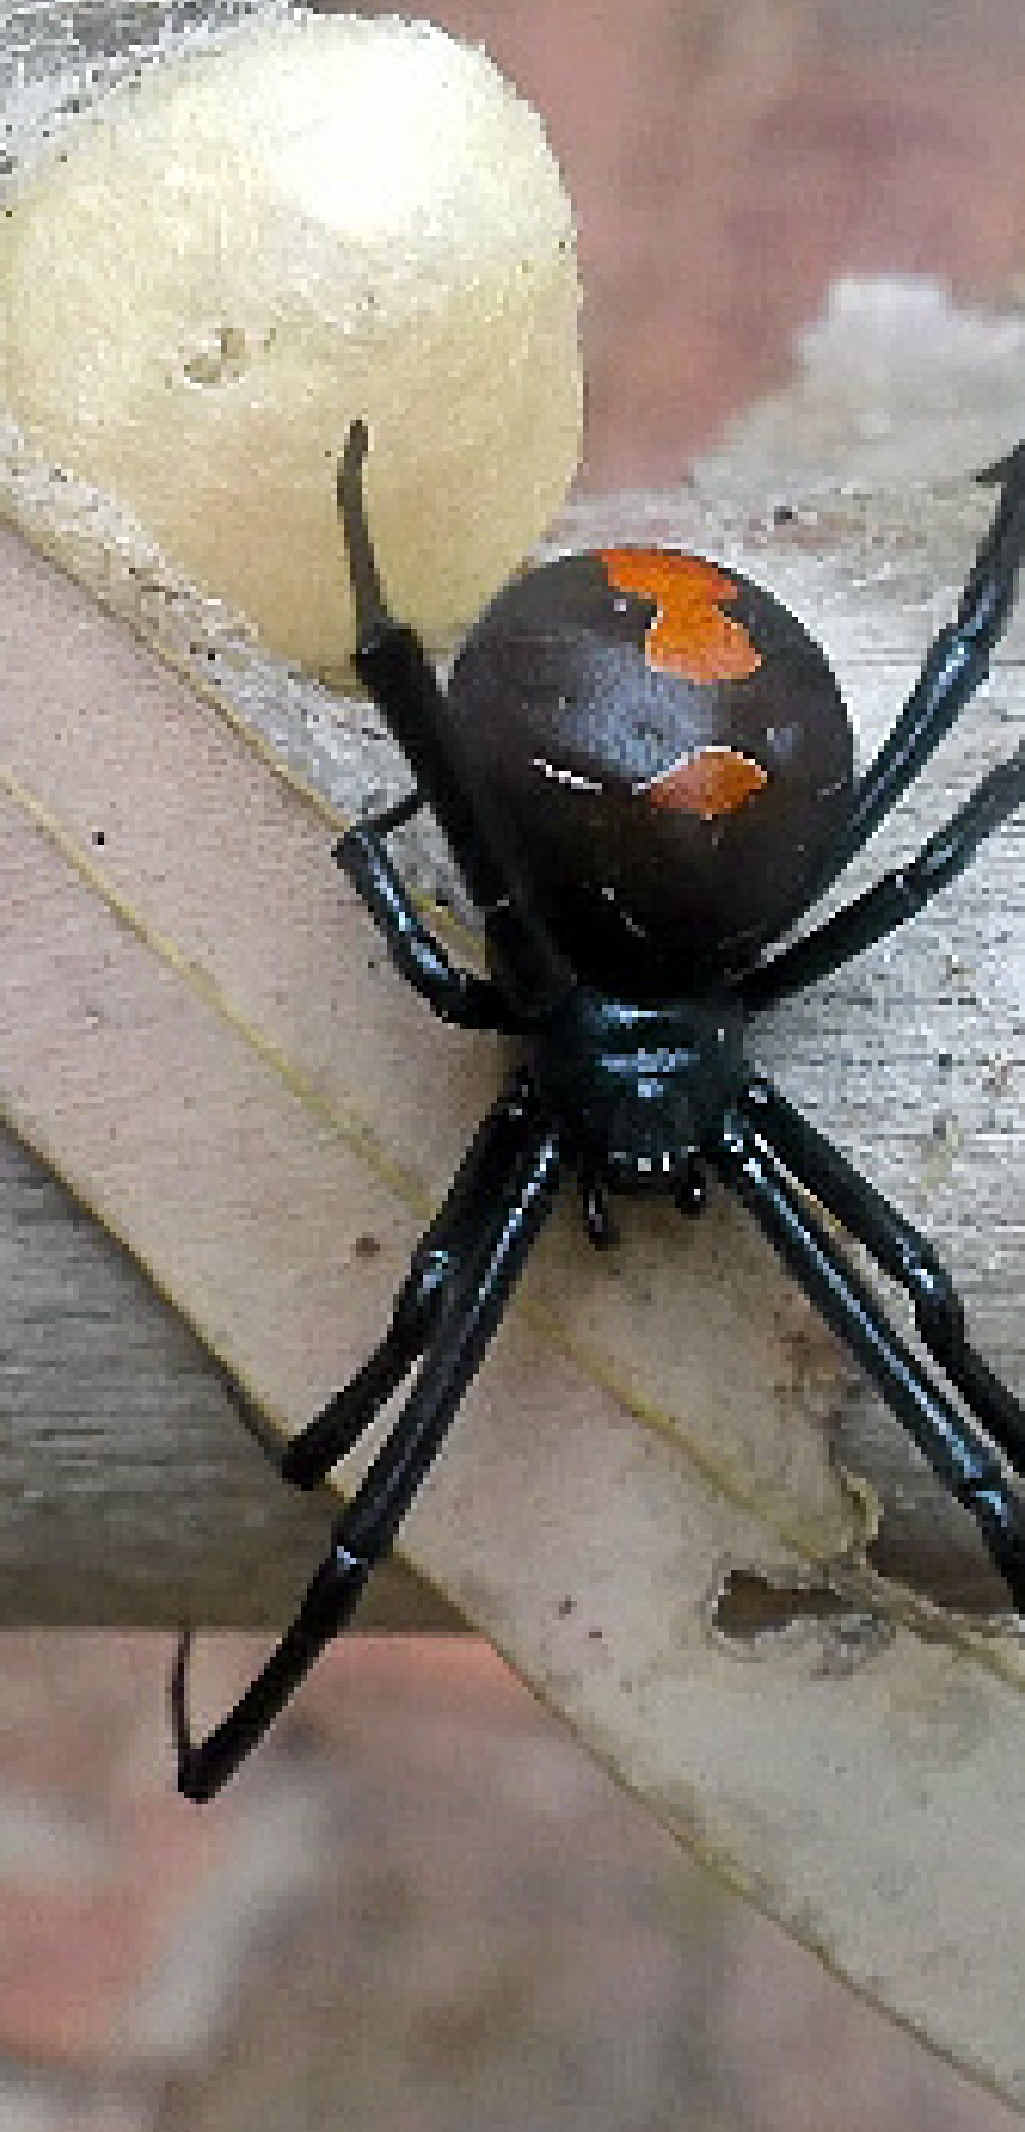 REDBACK MENACE: A Resident at Cloudscape estate says she kills on average 20 redback spiders a week.